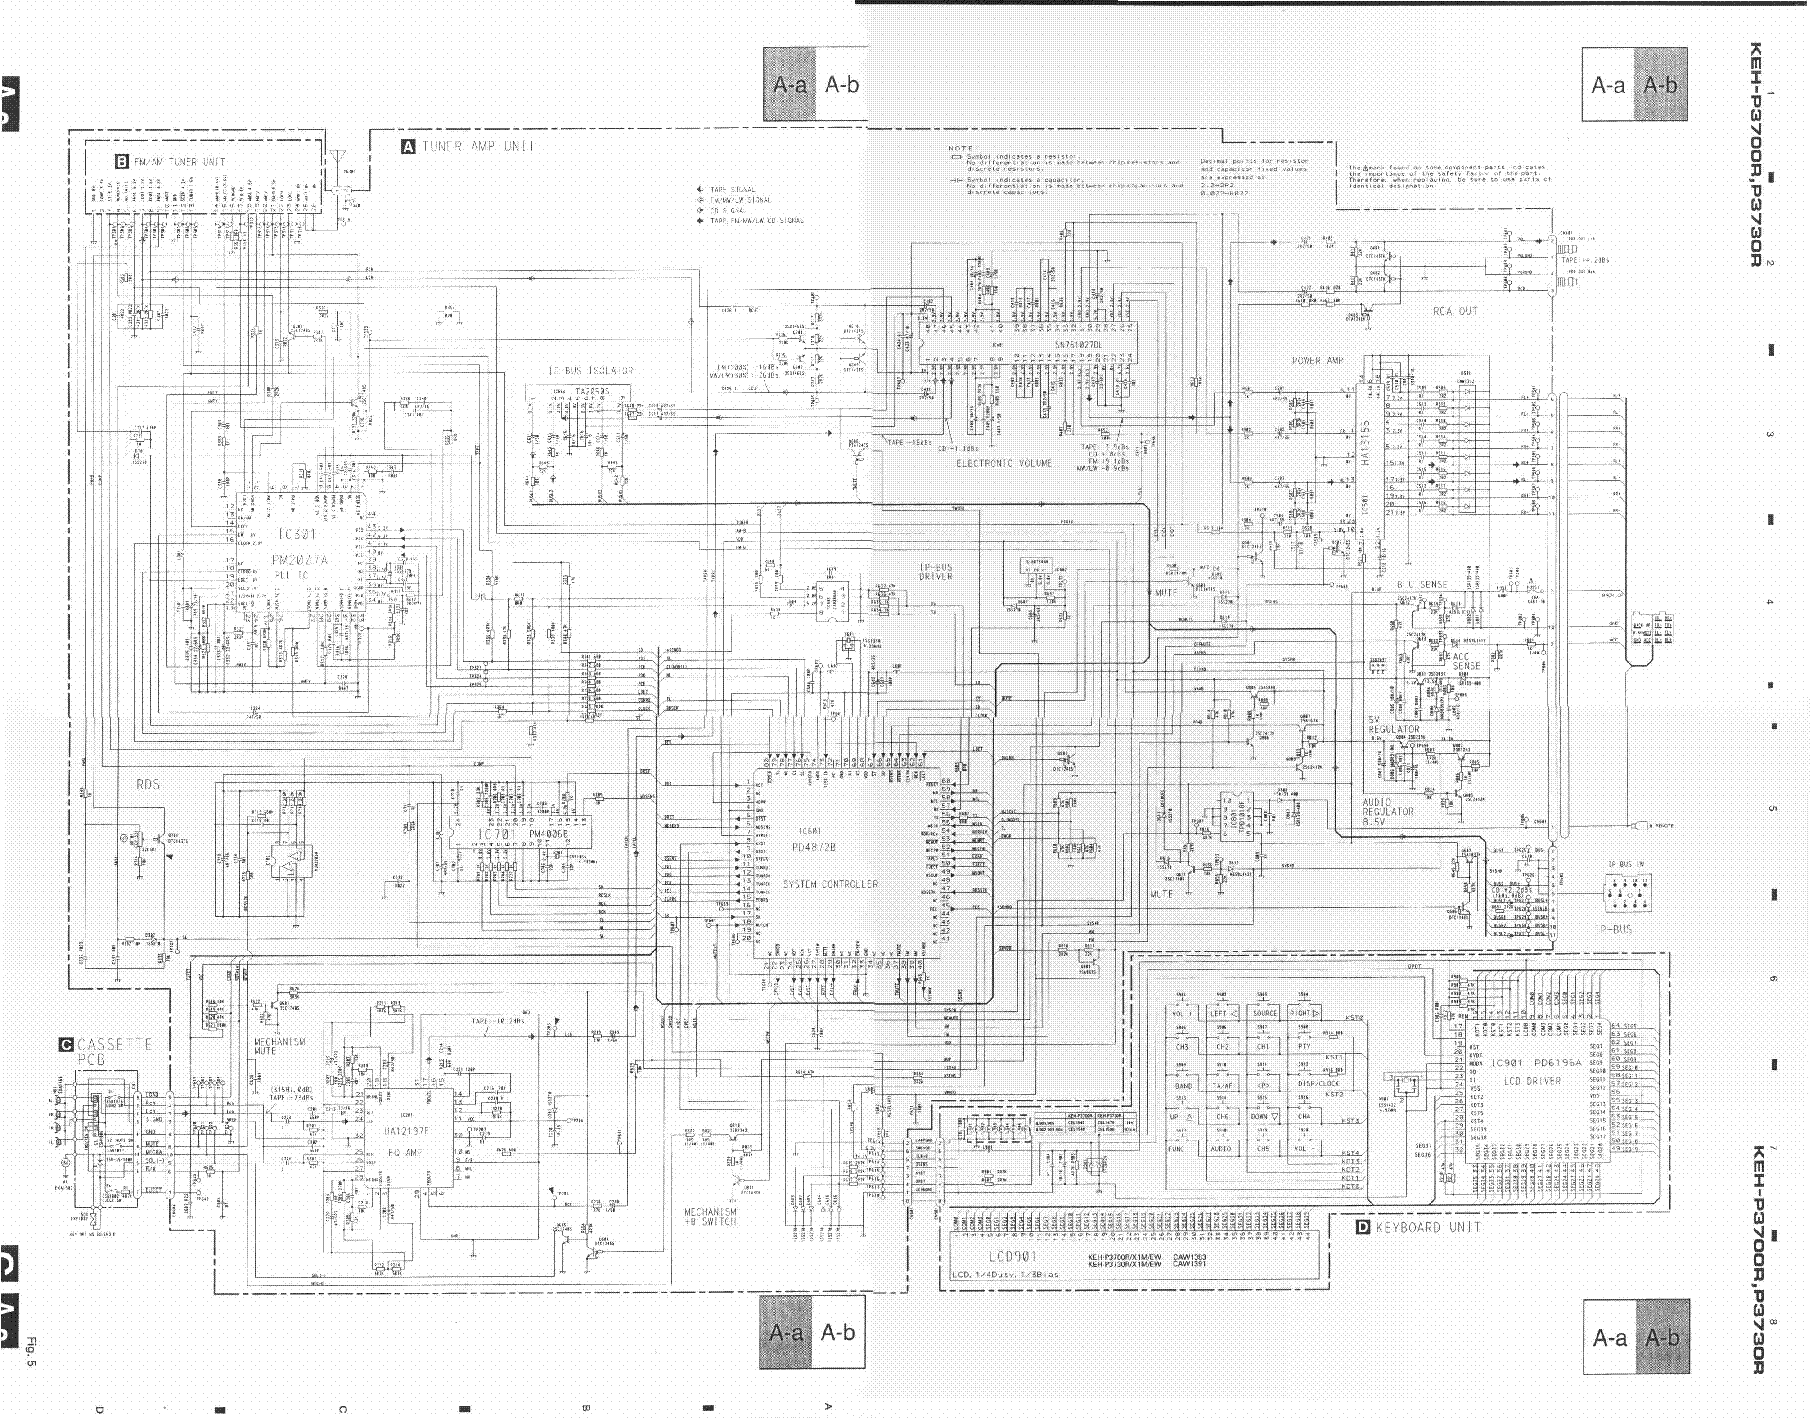 Pioneer Deh 8300sd P8300ub 8350sd Service Manual Download Avic F700bt Wiring Diagram